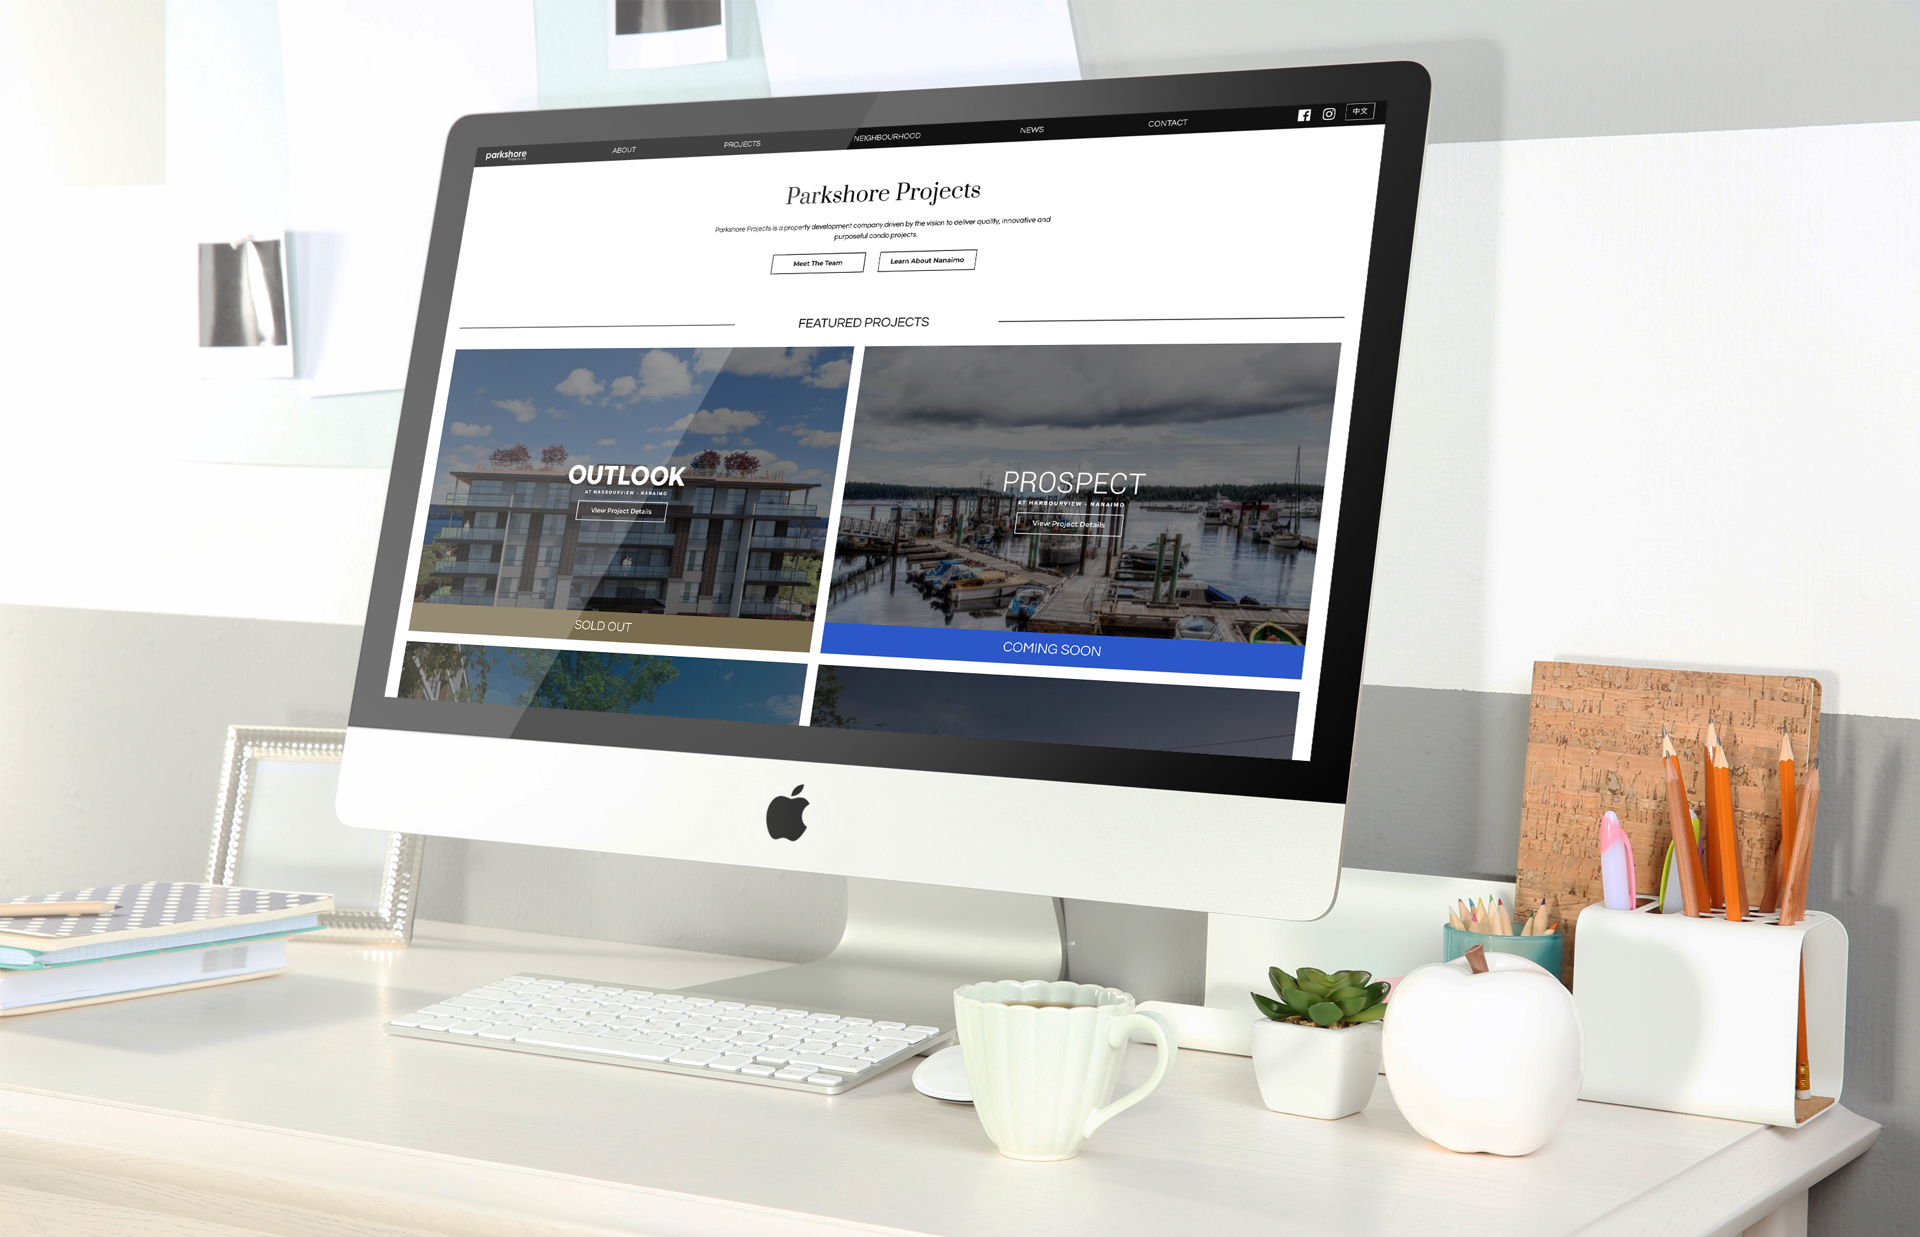 Large iMac Parkshore Projects Mockup Nanaimo Developer